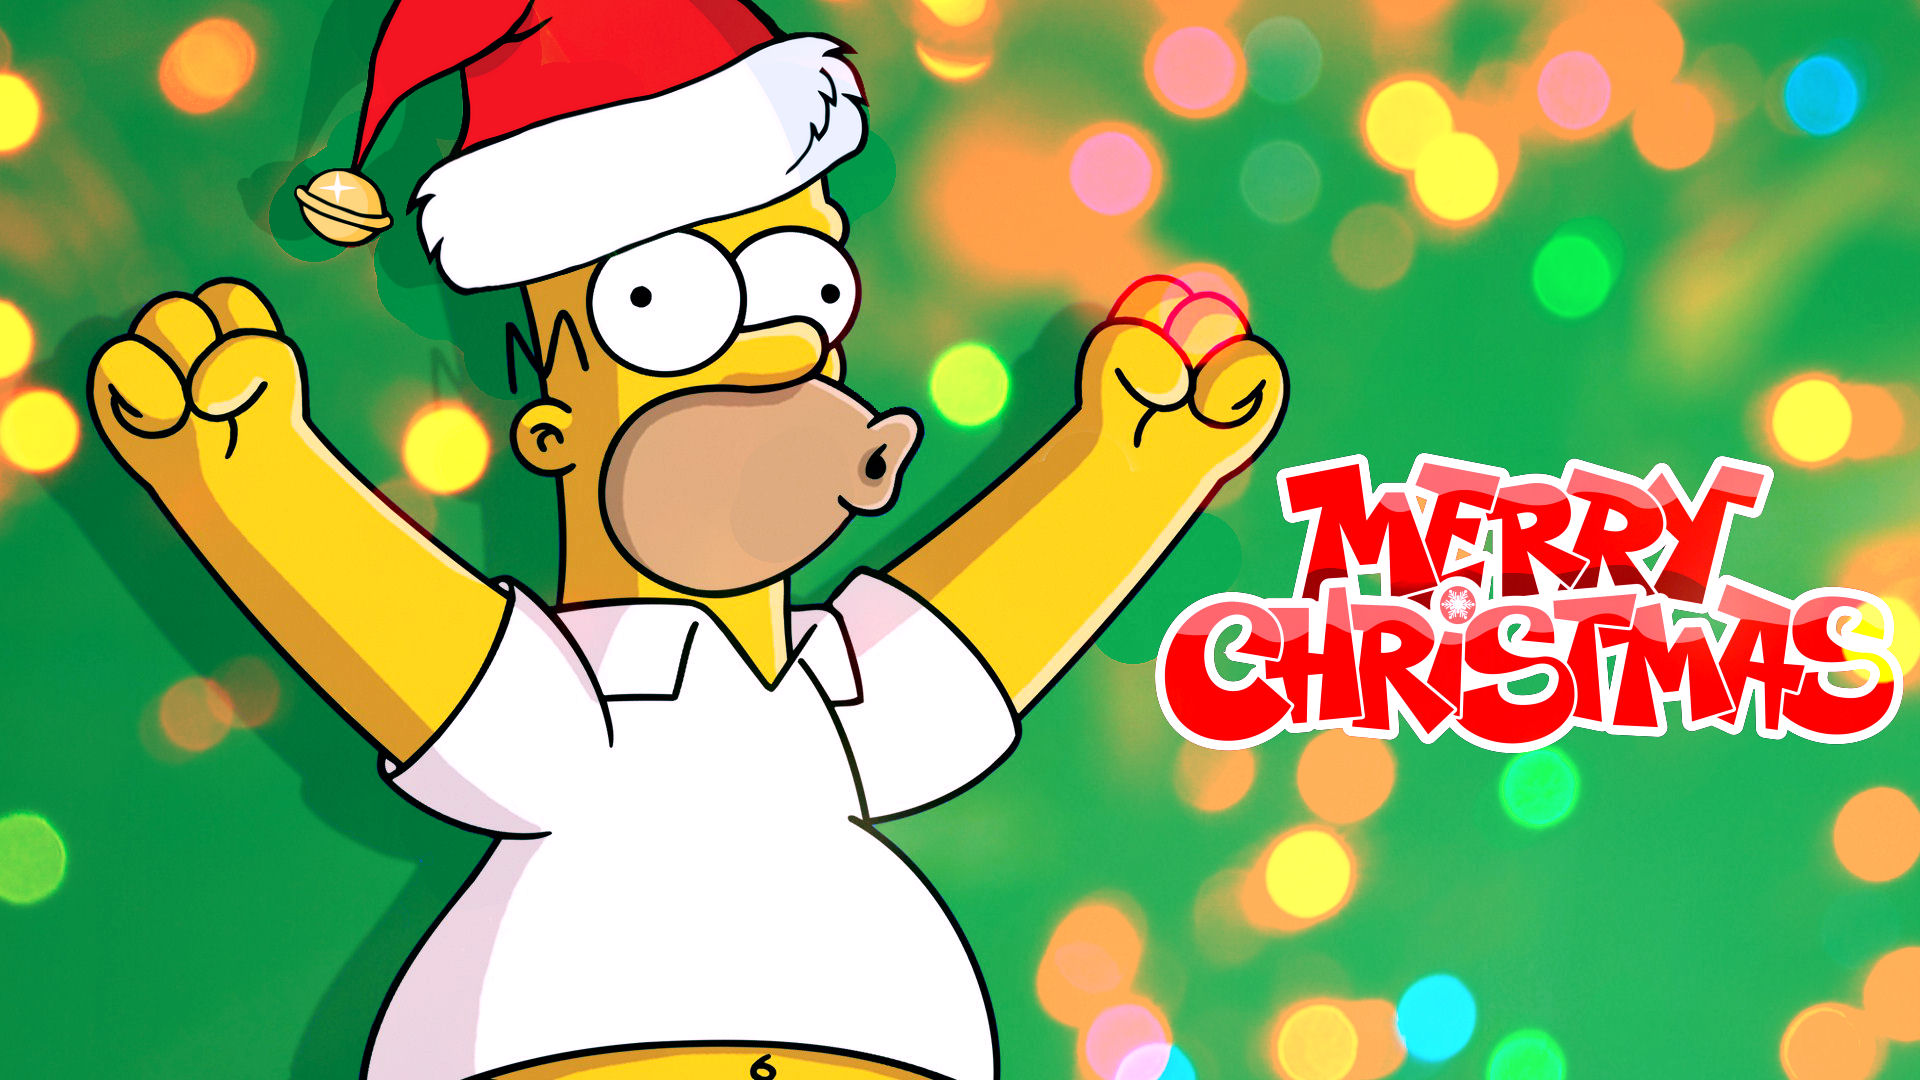 The Simpsons - Homer's Merry Christmas Wallpaper by ...